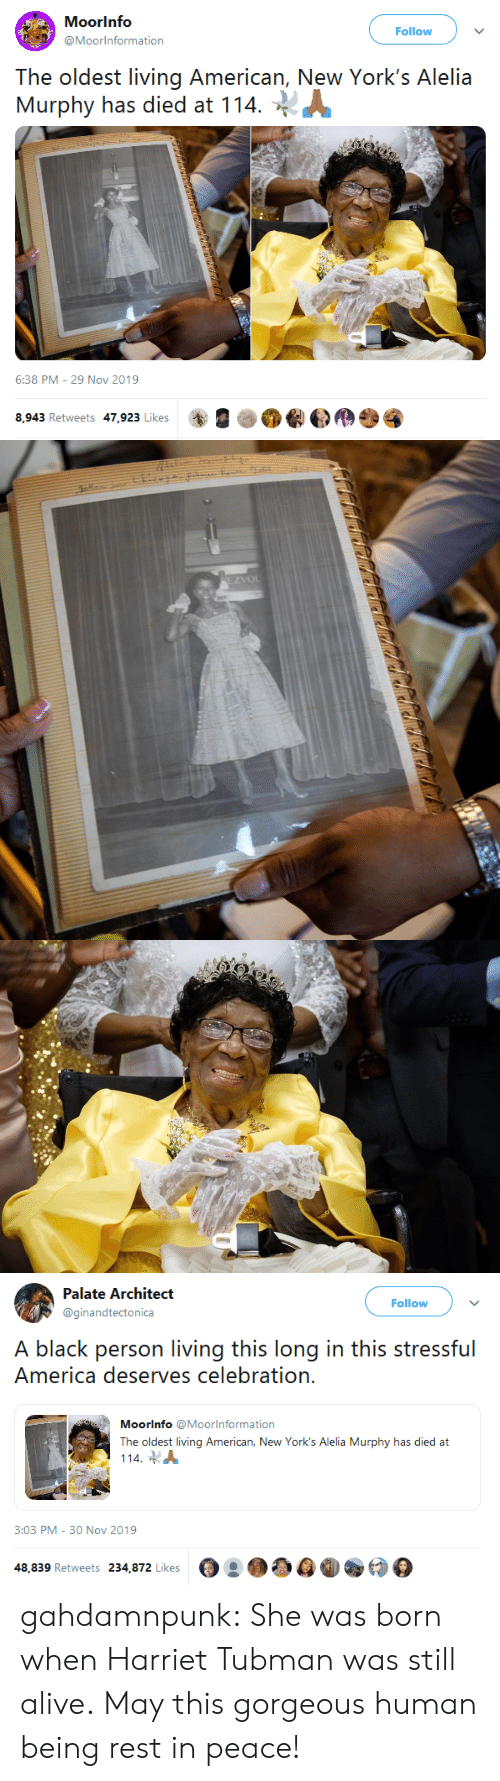 rest in peace: Moorinfo  Follow  @Moorinformation  The oldest living American, New York's Alelia  Murphy has died at 114  6:38 PM - 29 Nov 2019  8,943 Retweets 47,923 Likes   EZVOL   Palate Architect  Follow  @ginandtectonica  A black person living this long in this stressful  America deserves celebration.  Moorinfo @Moorlnformation  The oldest living American, New York's Alelia Murphy has died at  114  3:03 PM - 30 Nov 2019  48,839 Retweets 234,872 Likes gahdamnpunk: She was born when Harriet Tubman was still alive. May this gorgeous human being rest in peace!